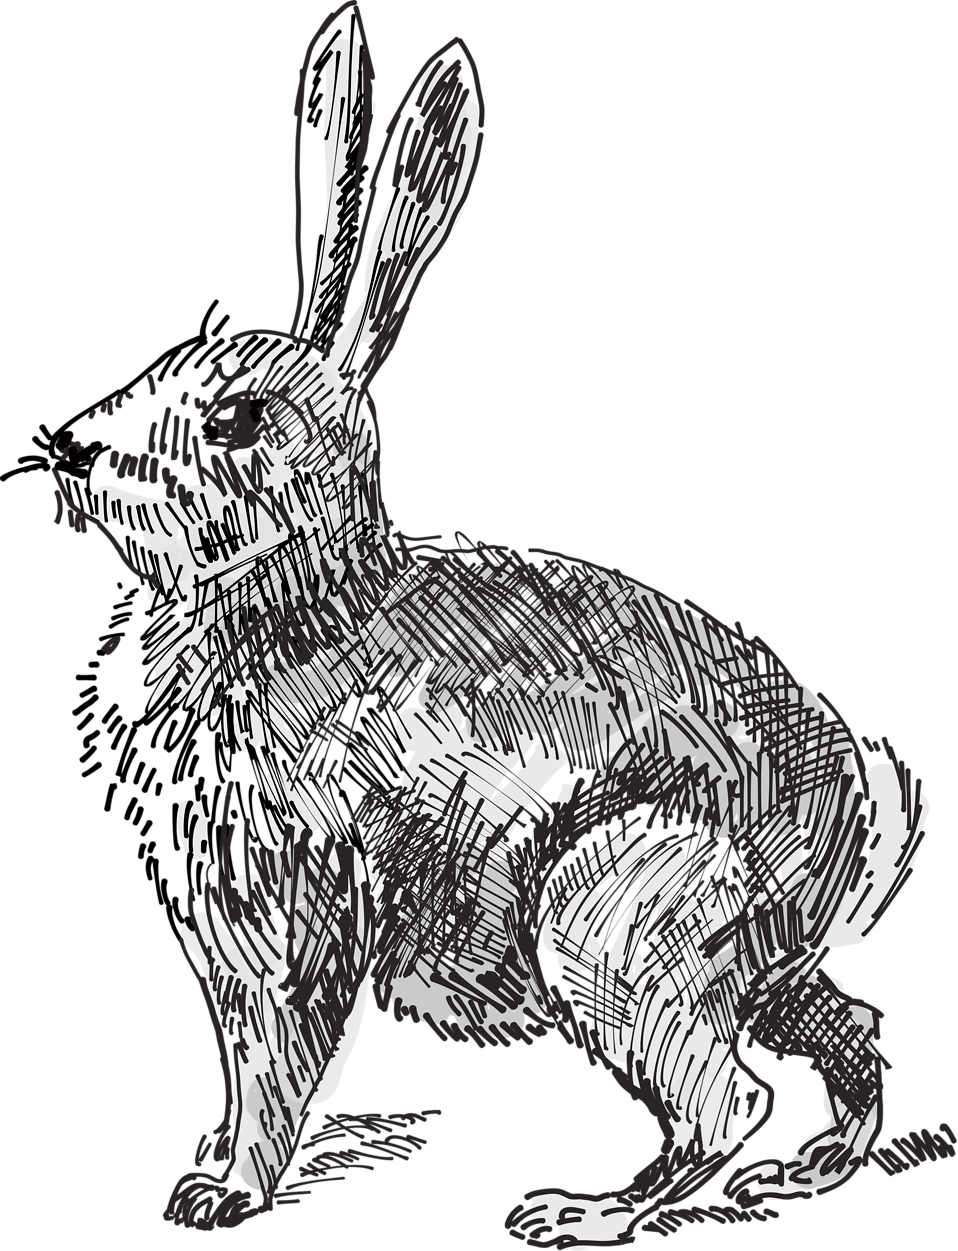 Drawing bunnies eastern cottontail. Rabbit illustrations image group